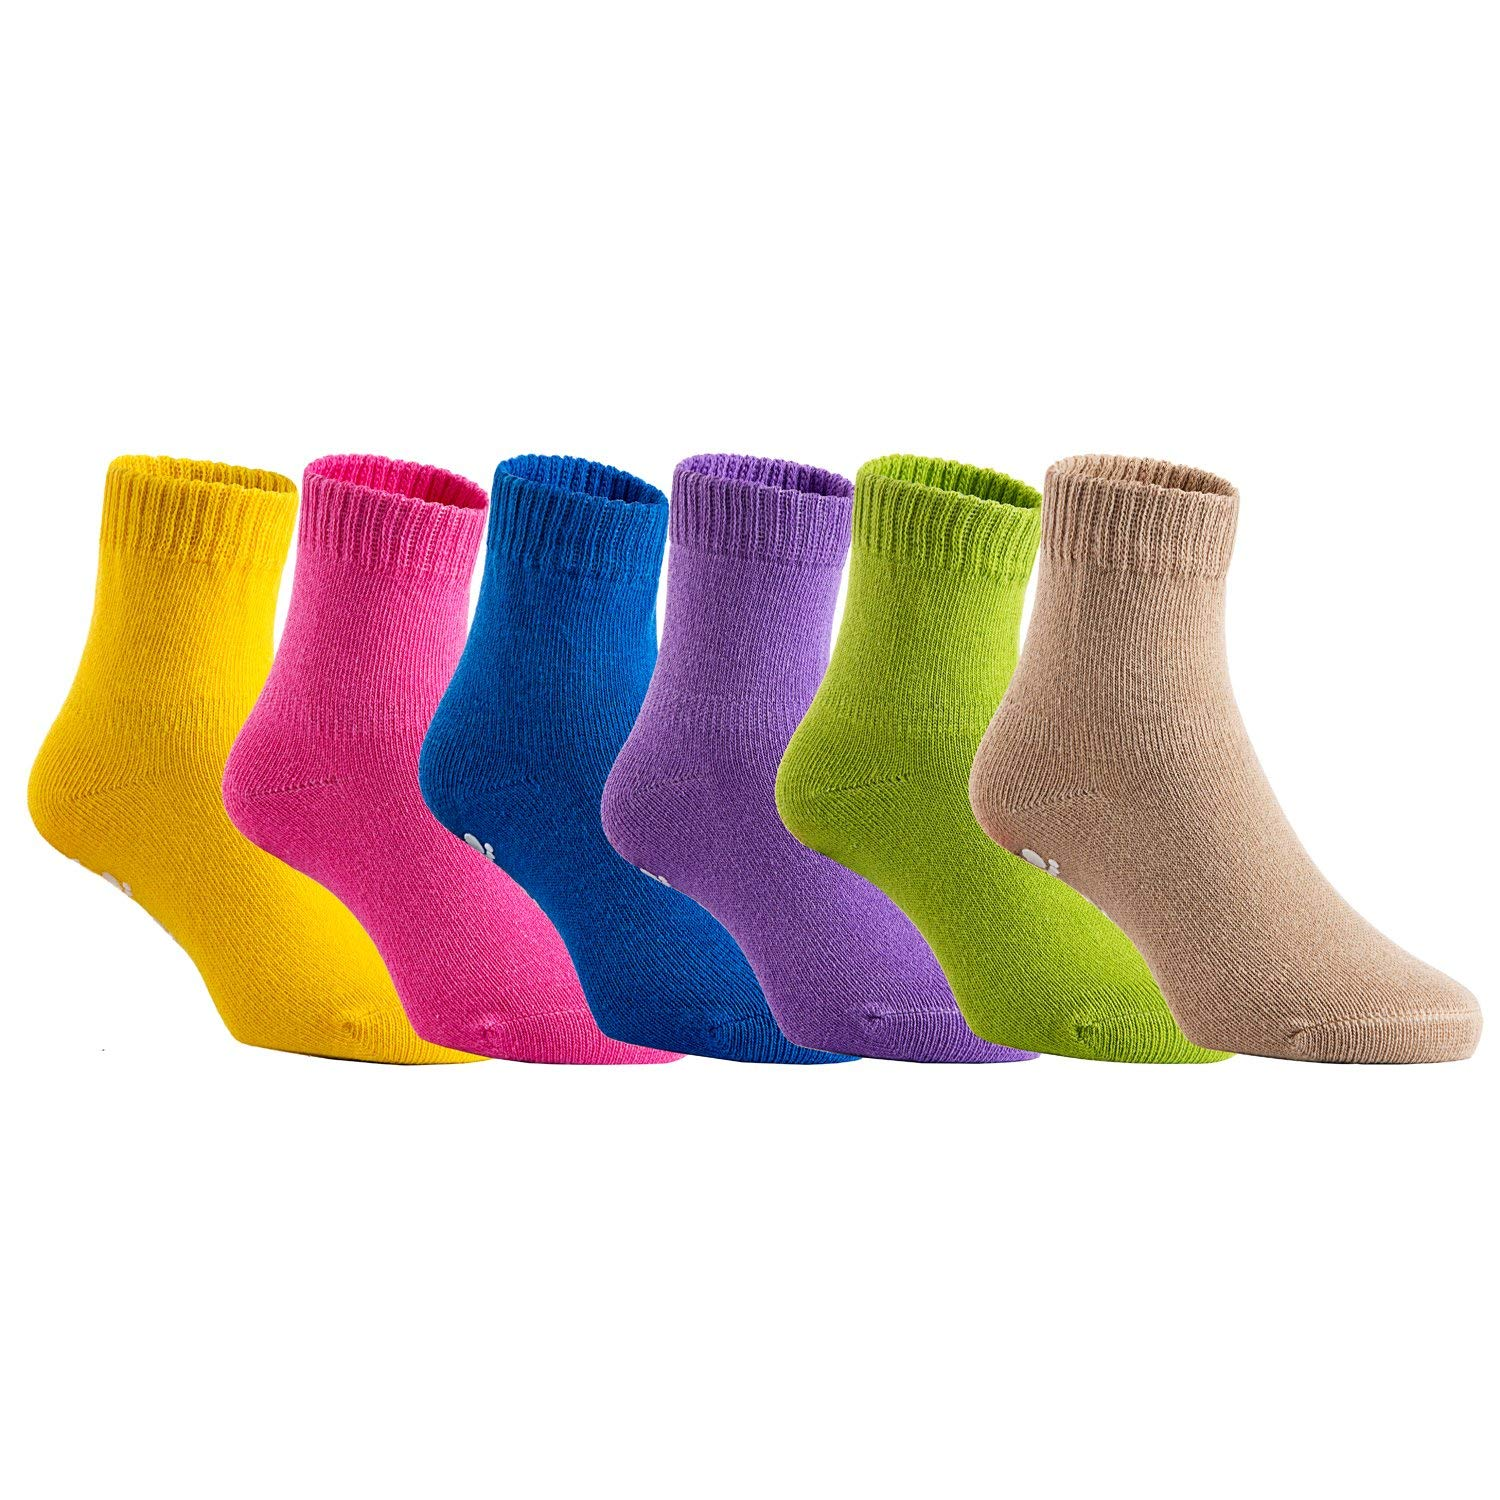 6a4f9f7d5 Get Quotations · AATMart Unisex Baby Toddler 6 Pairs Pack Non Slip Pure Cotton  Socks JH007 Multi Color 0Y